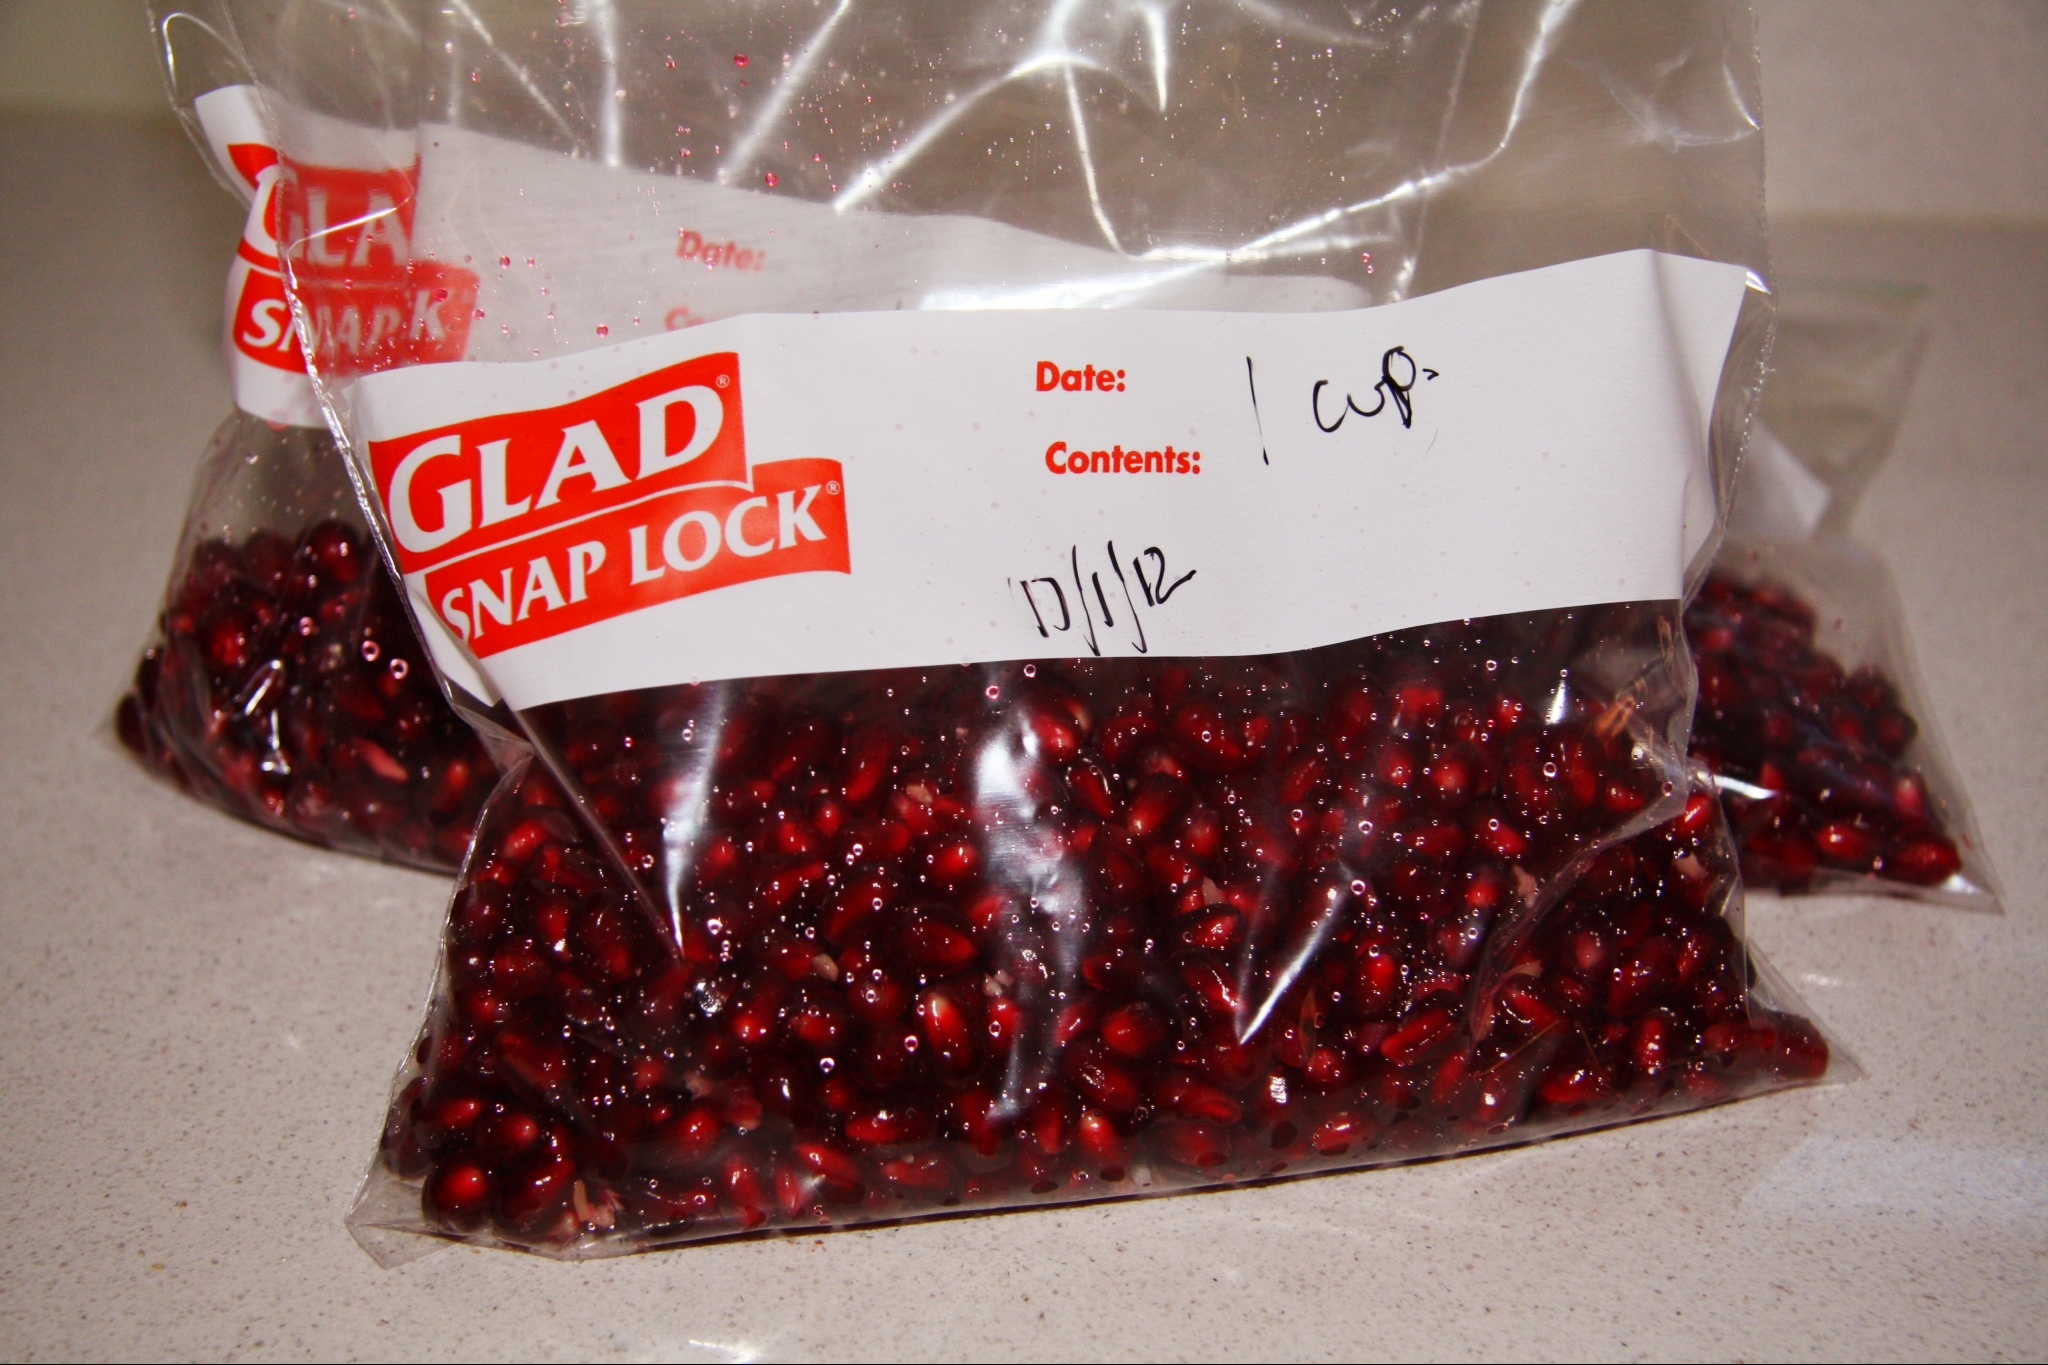 ... pomegranates place 1 cup measurements into ziplock bags and freeze